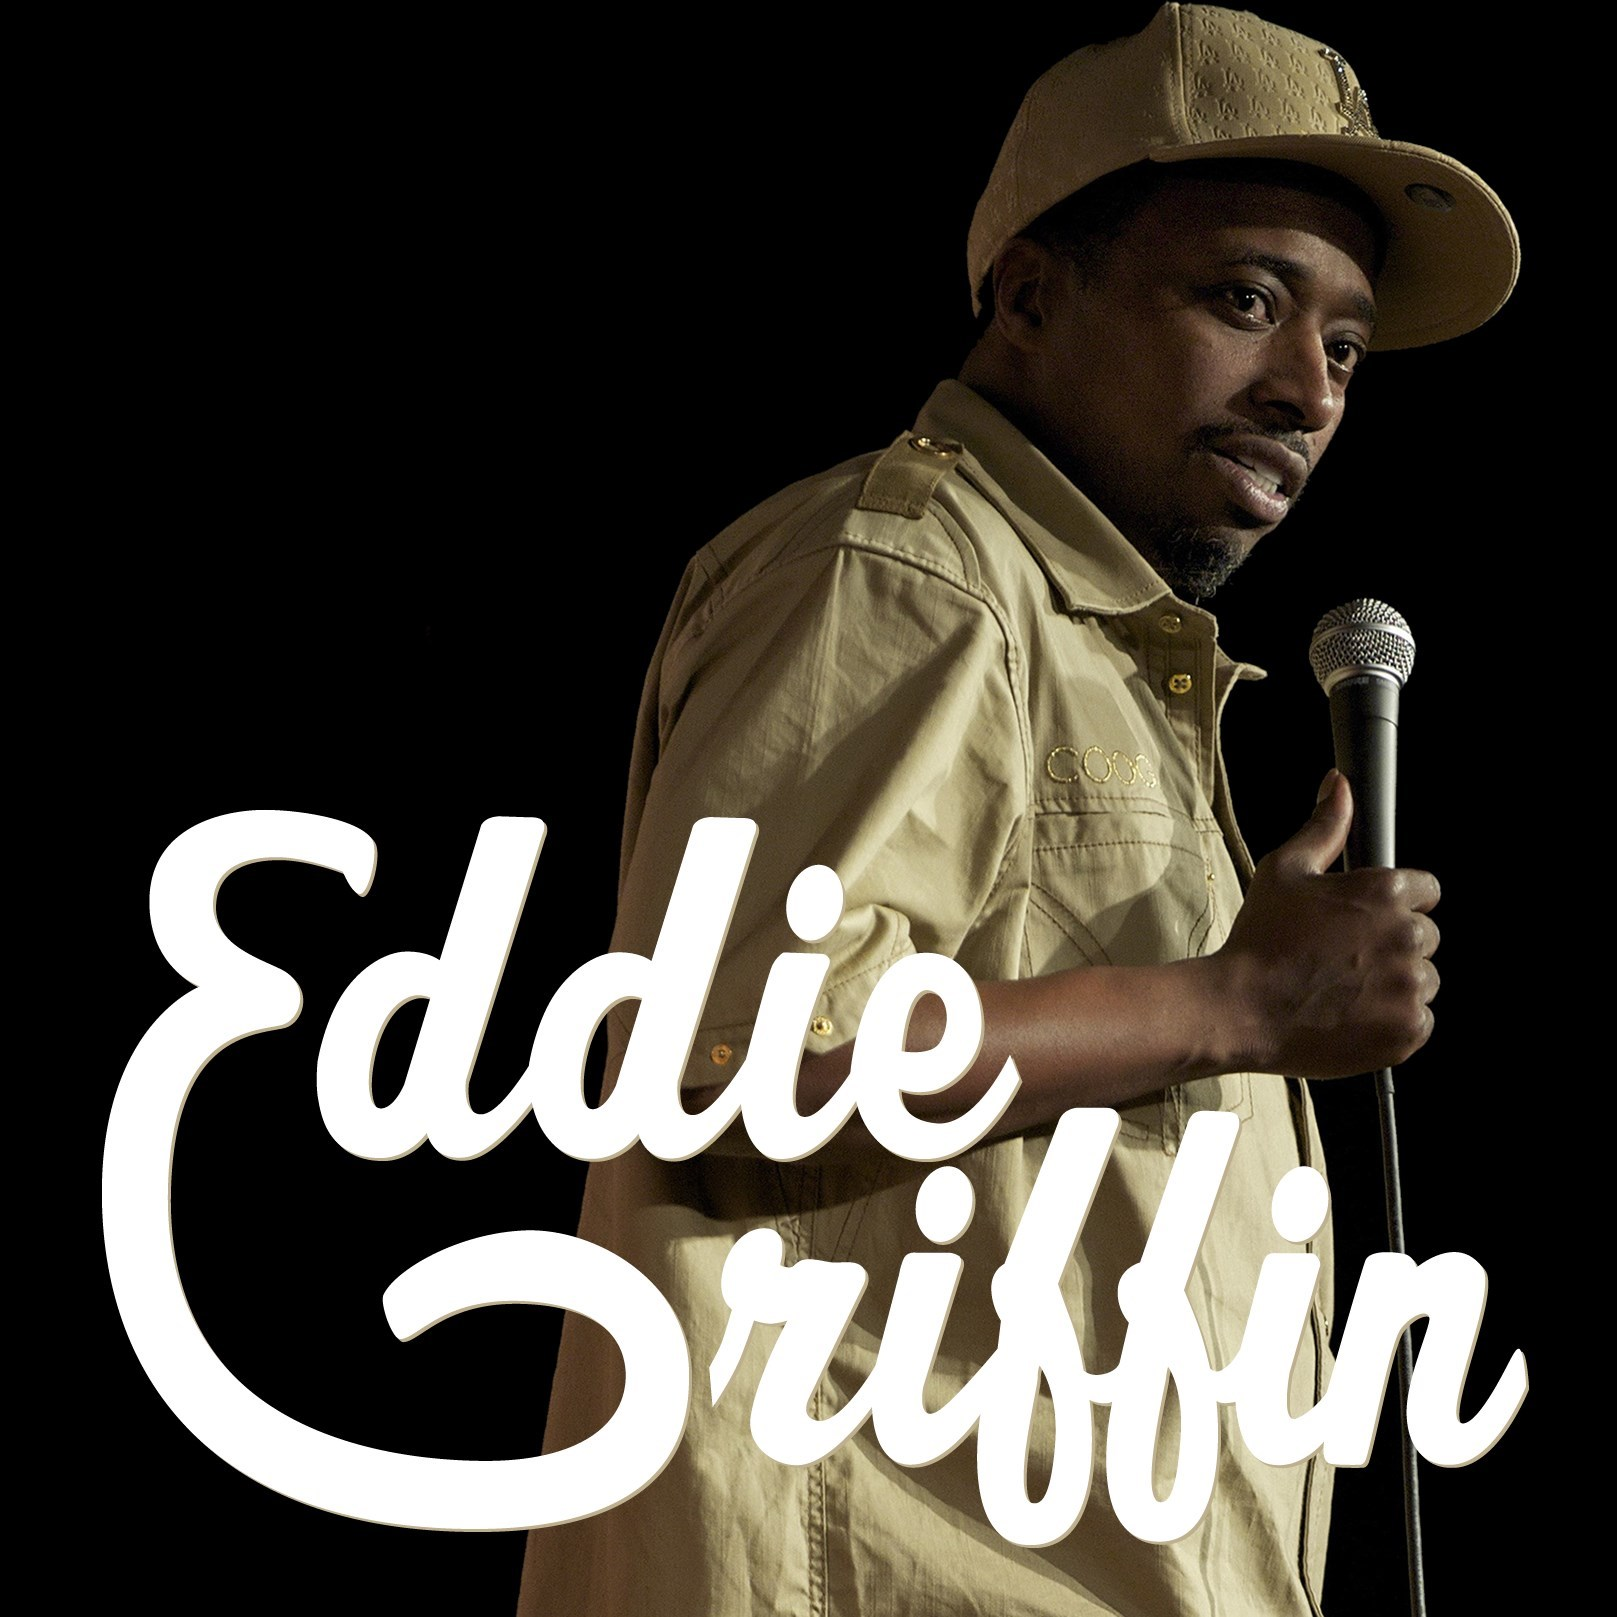 eddie griffin you can tell em i said it